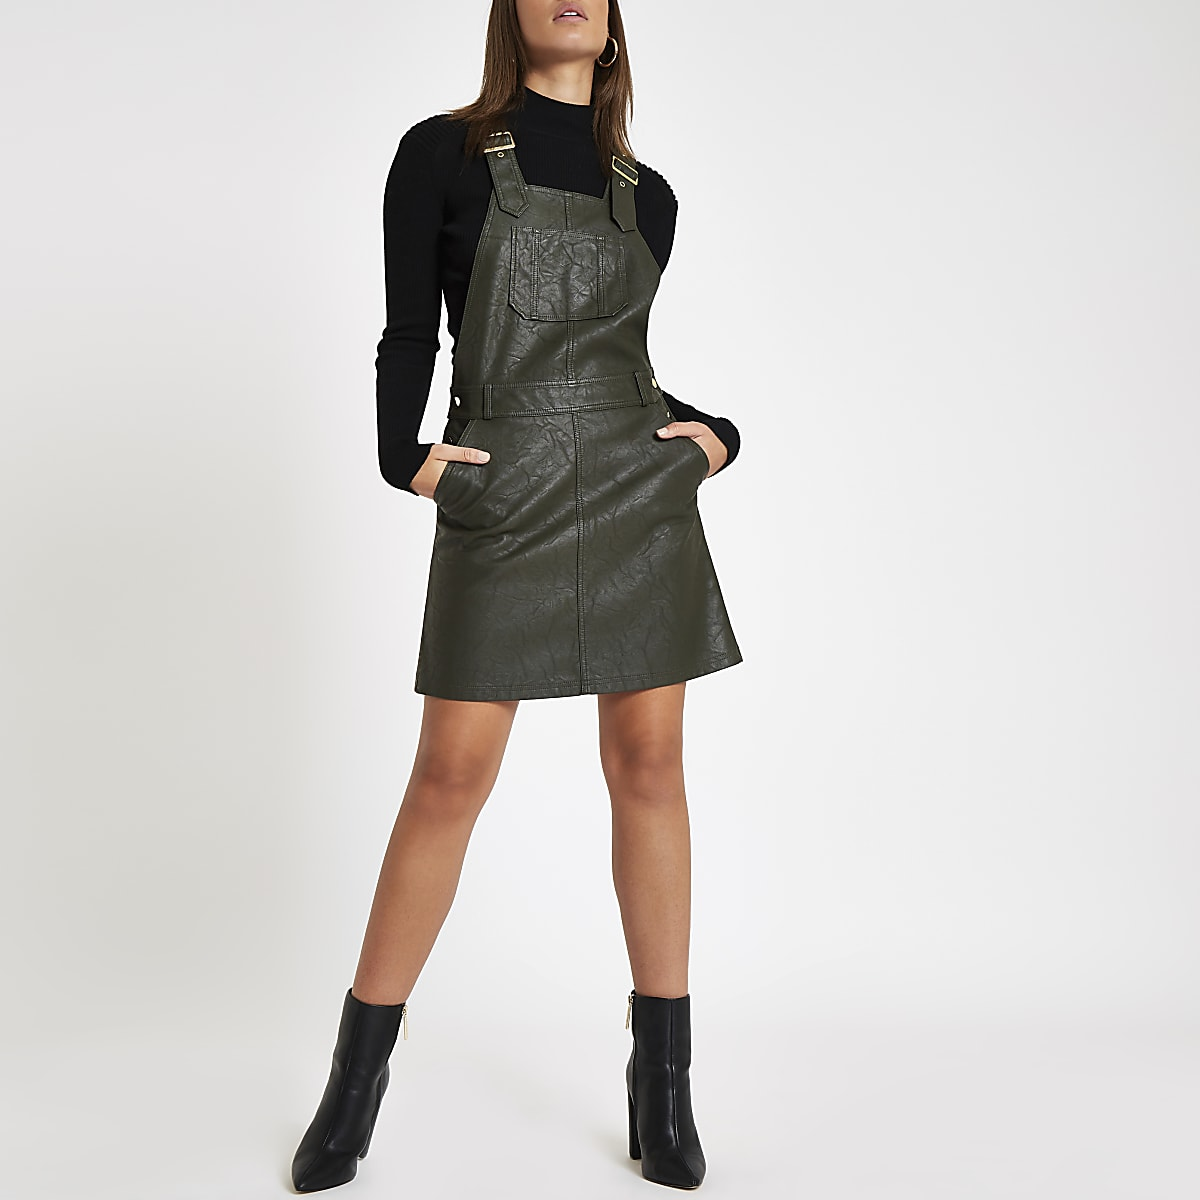 Khaki faux leather pinafore overall dress